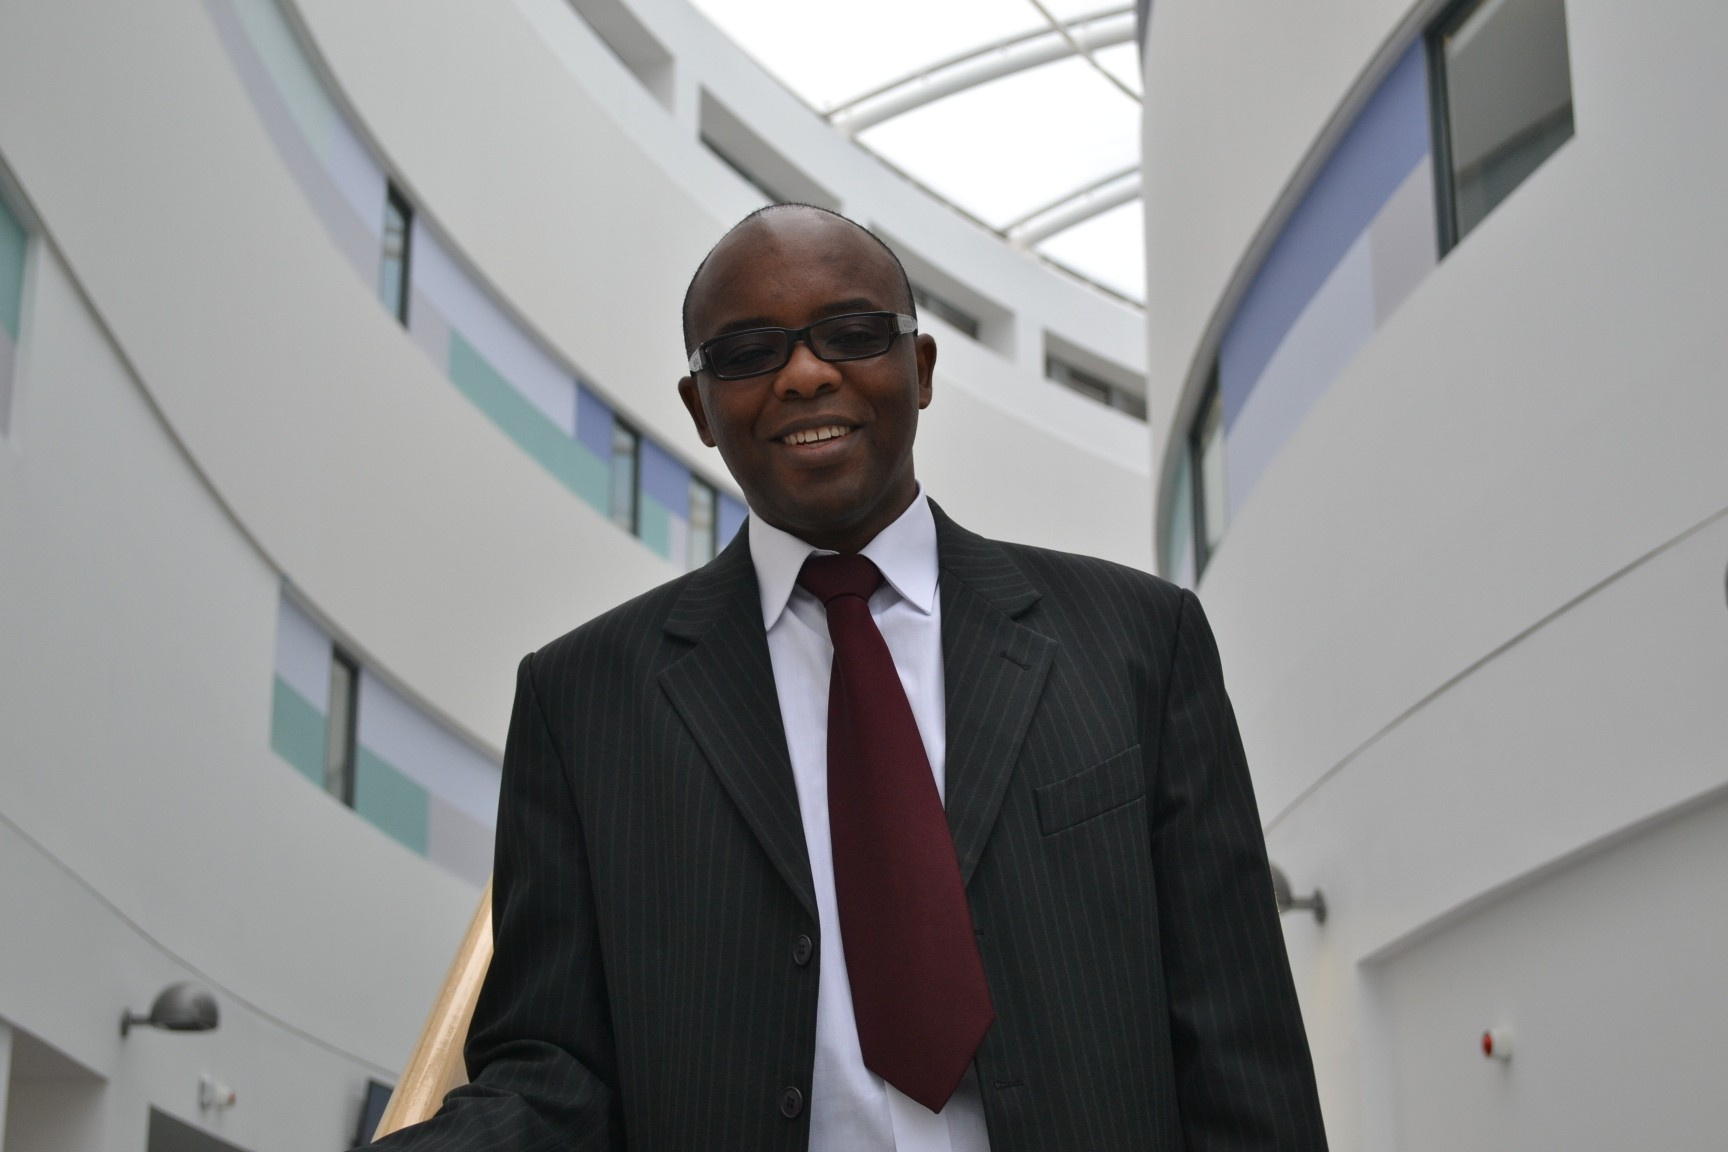 Professor James Njuguna